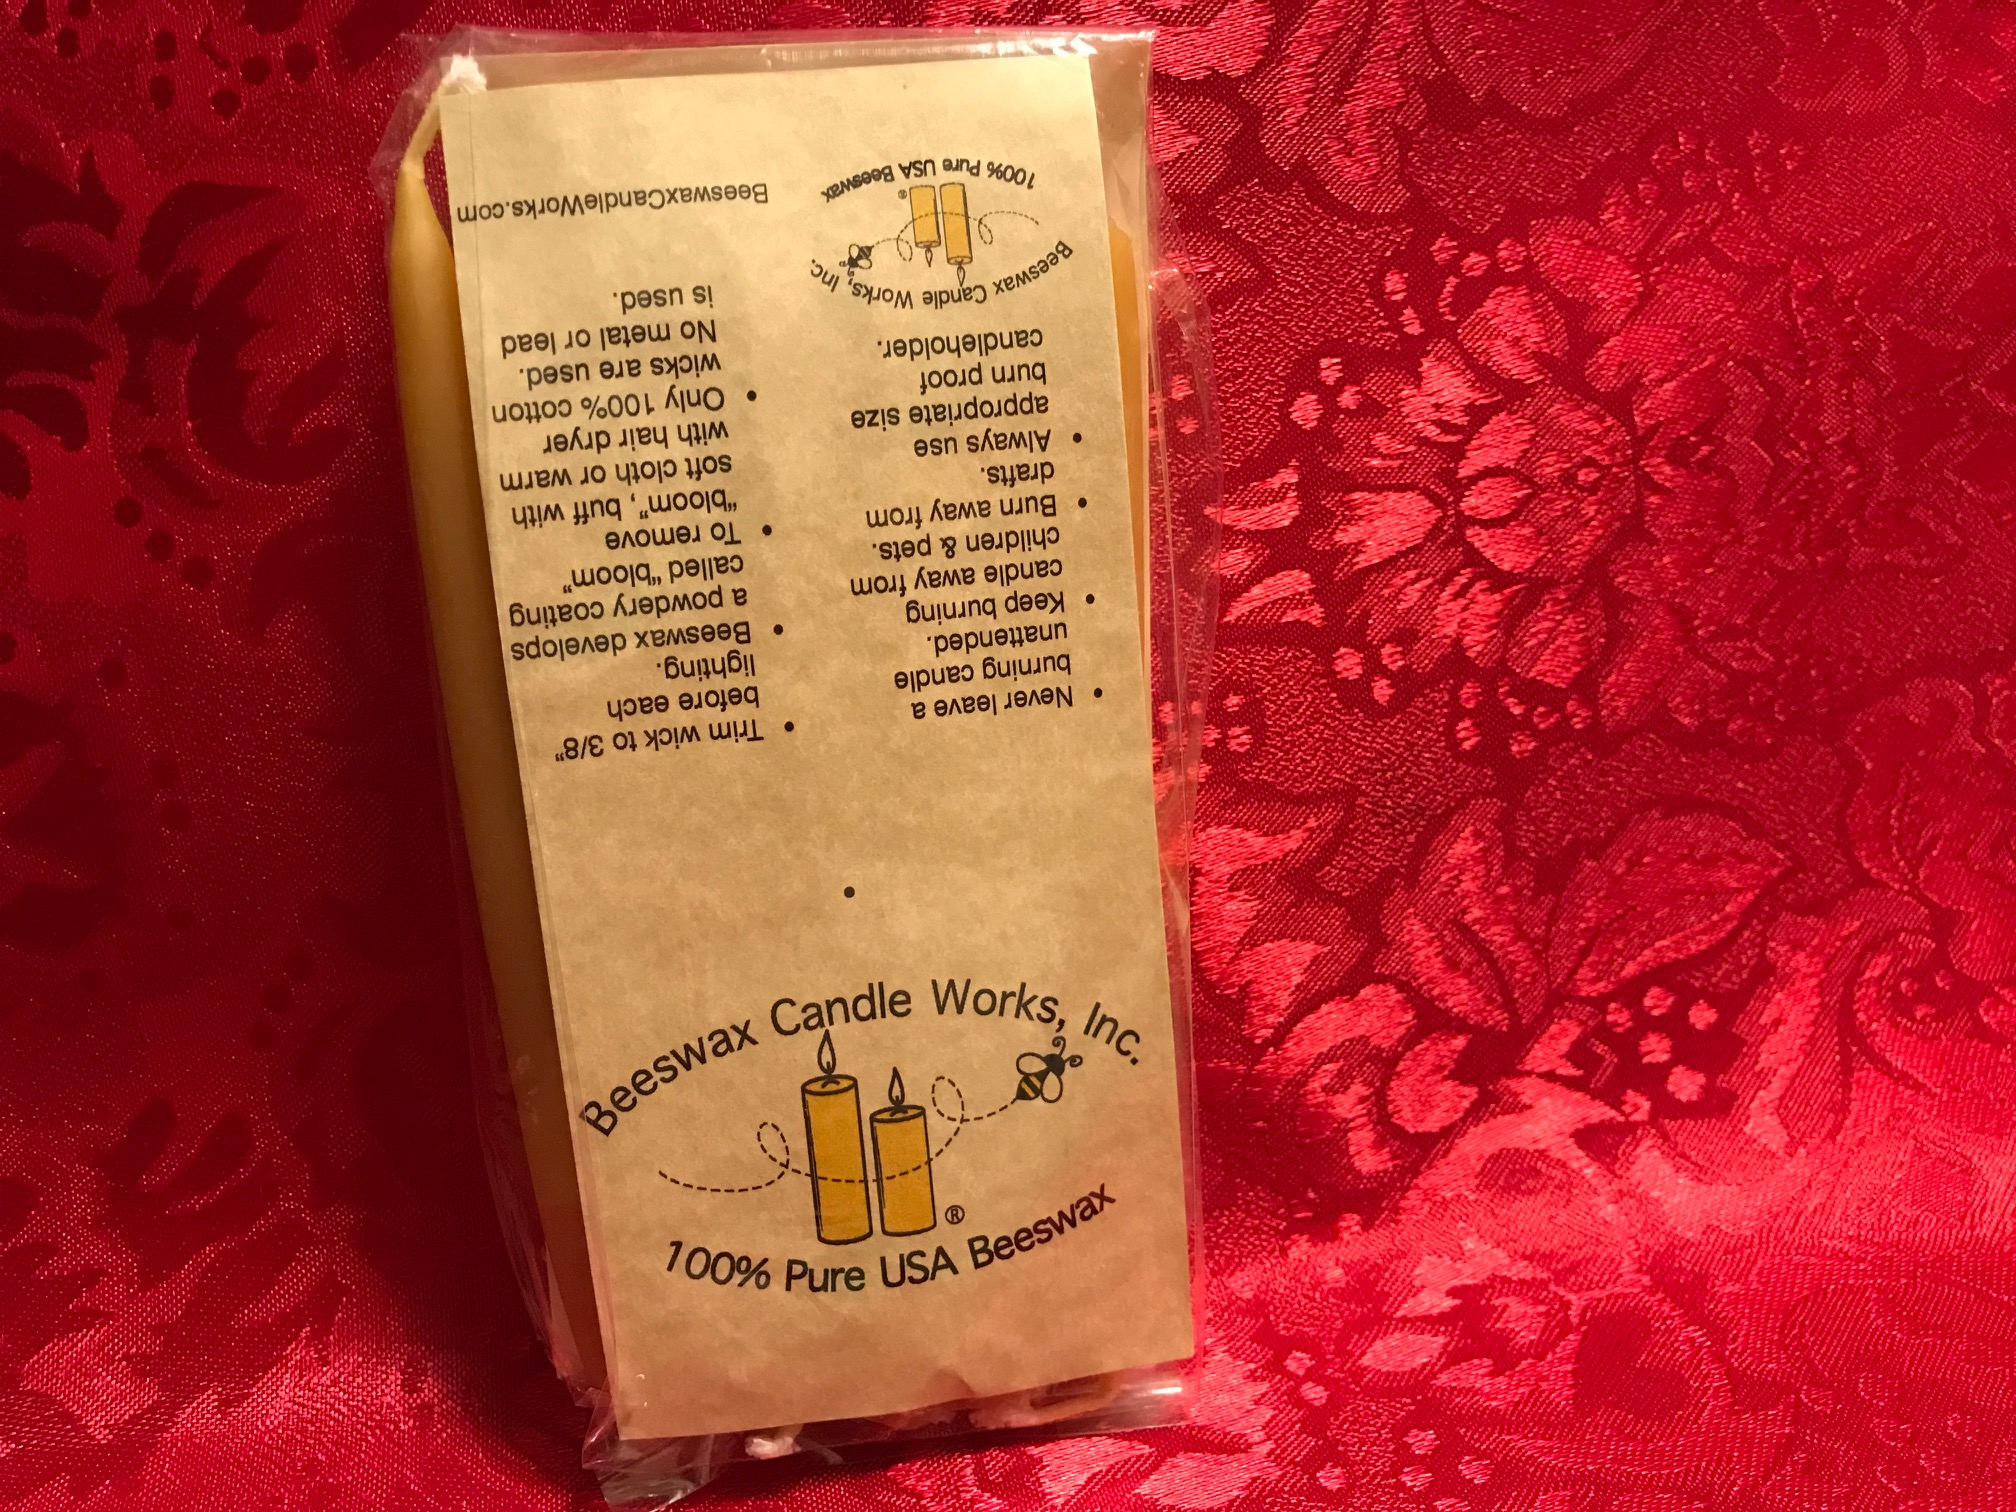 Beeswax Candle Works Brand Small Taper Candles For Hannukah (and Birthdays?): Lead-Free!